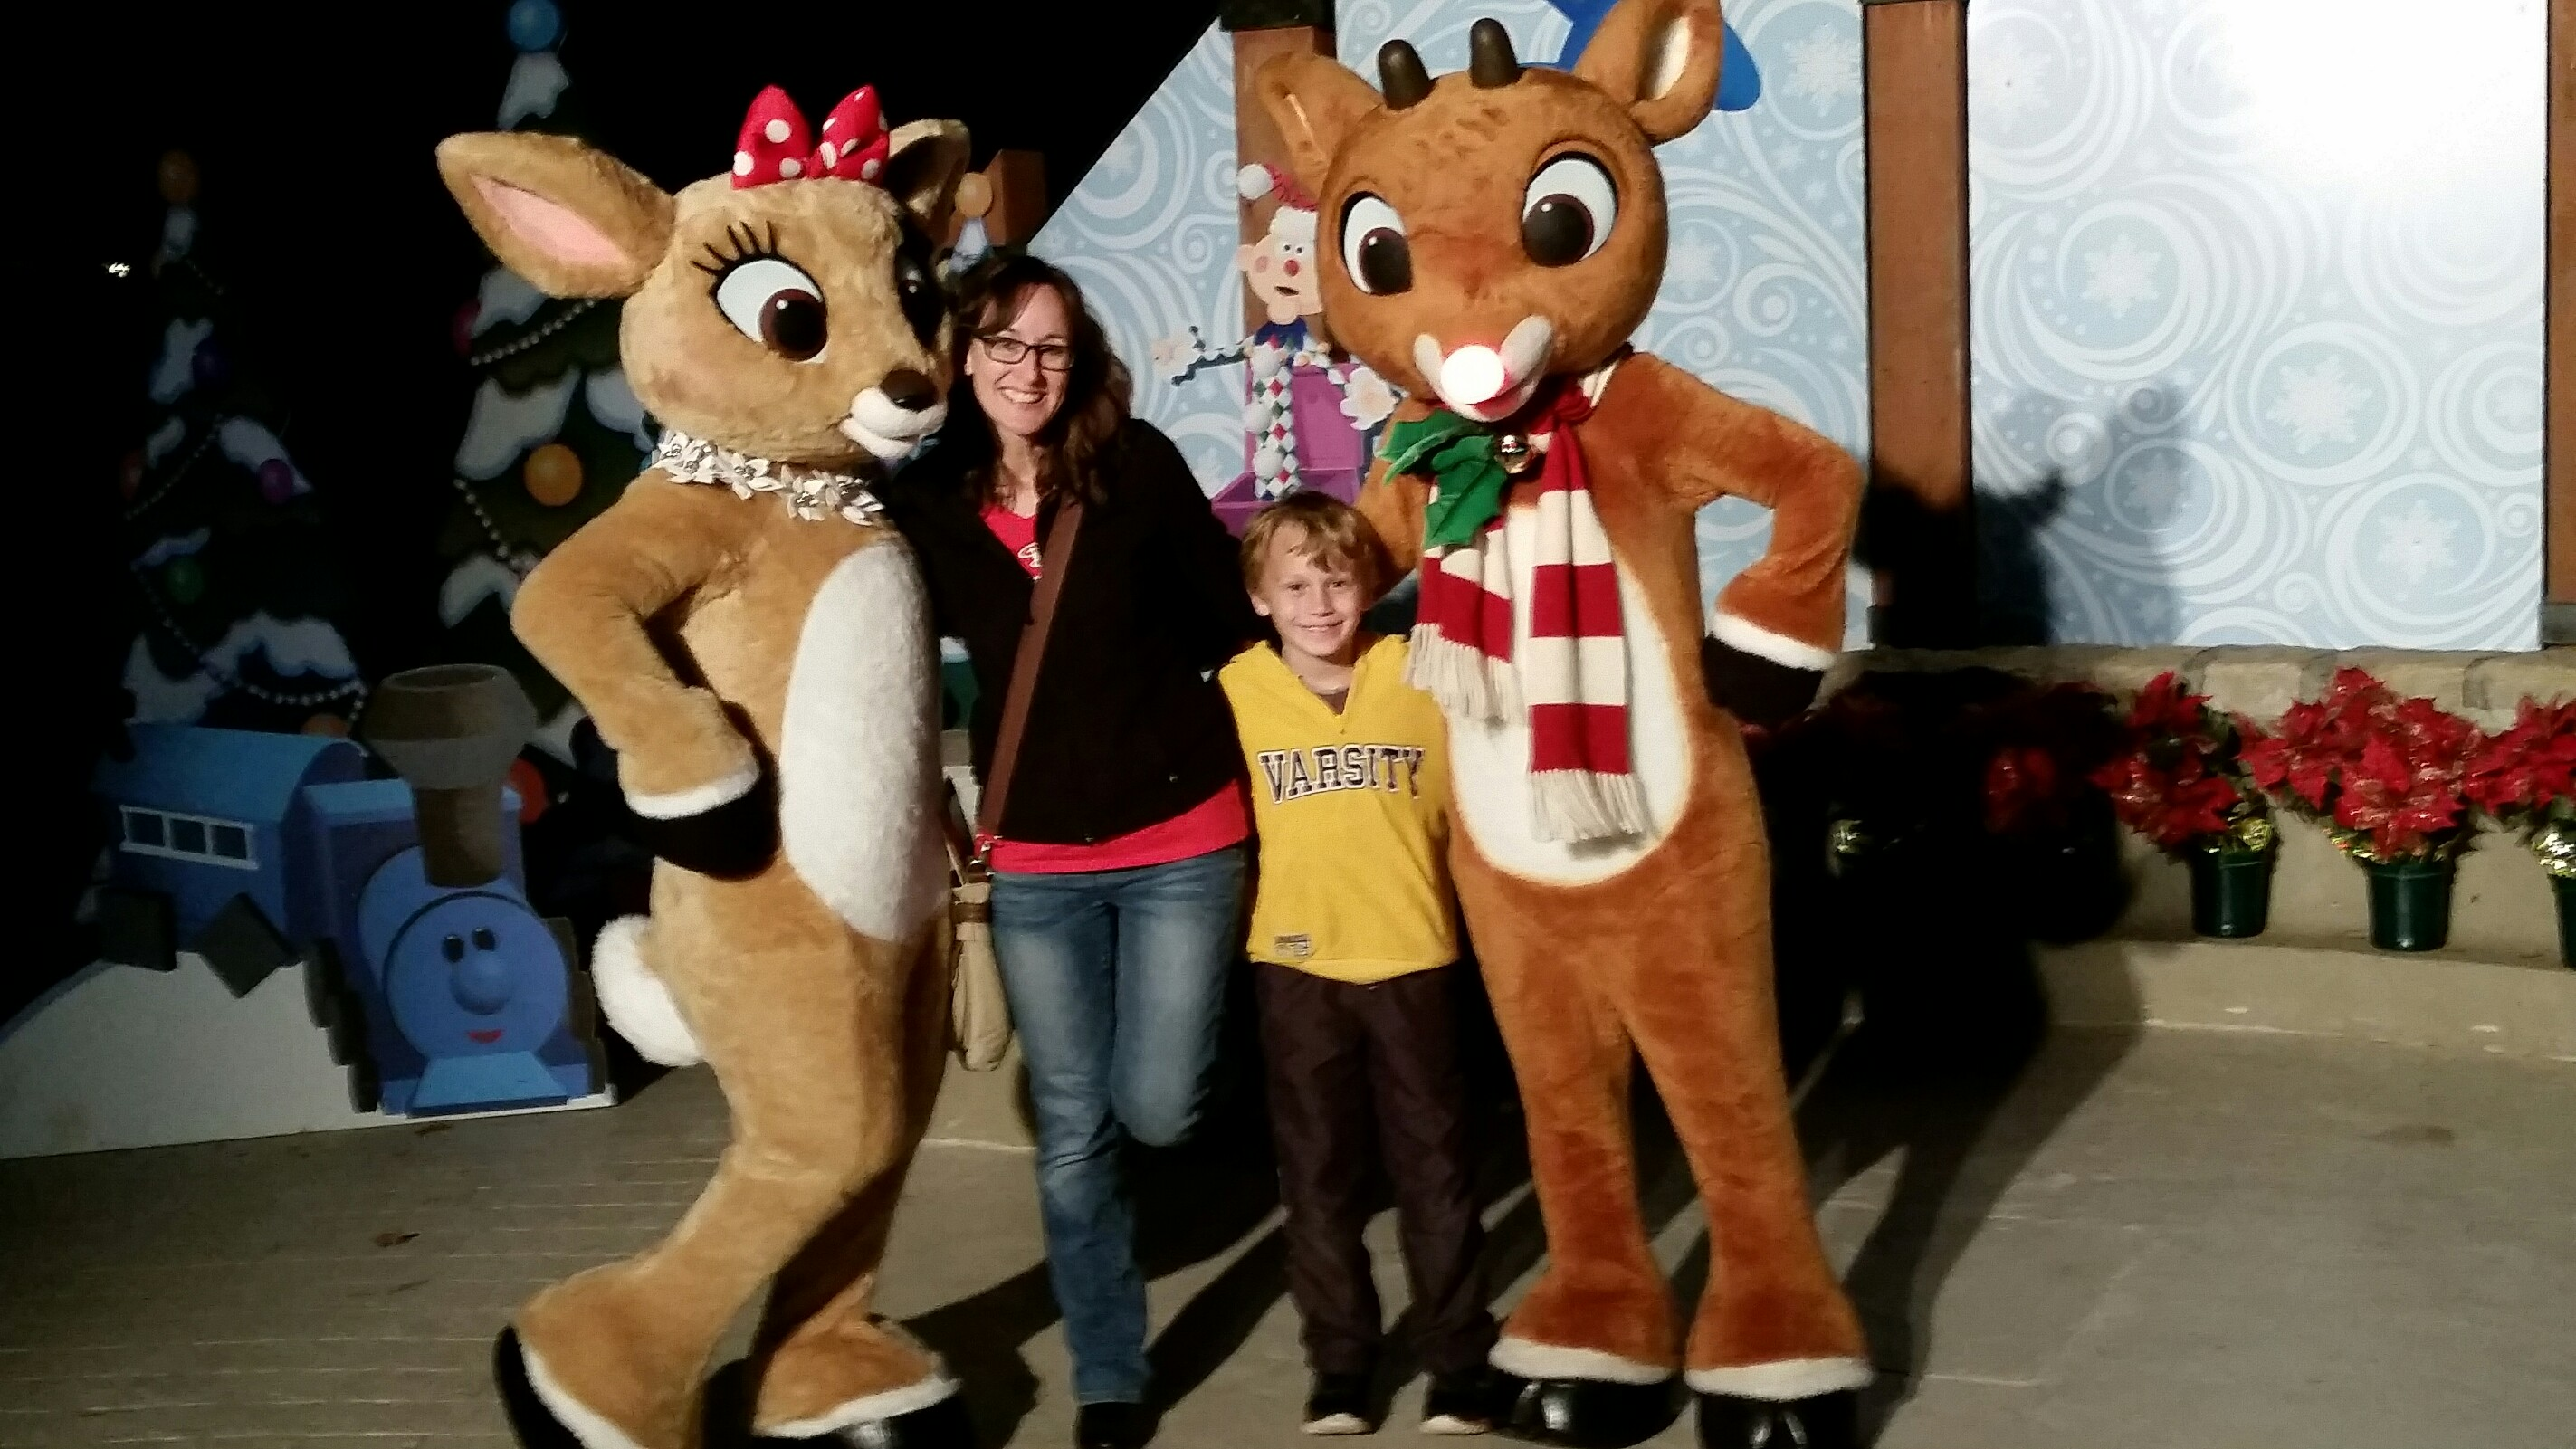 Strike a pose with your favorite reindeer at Stone Mountain Christmas!